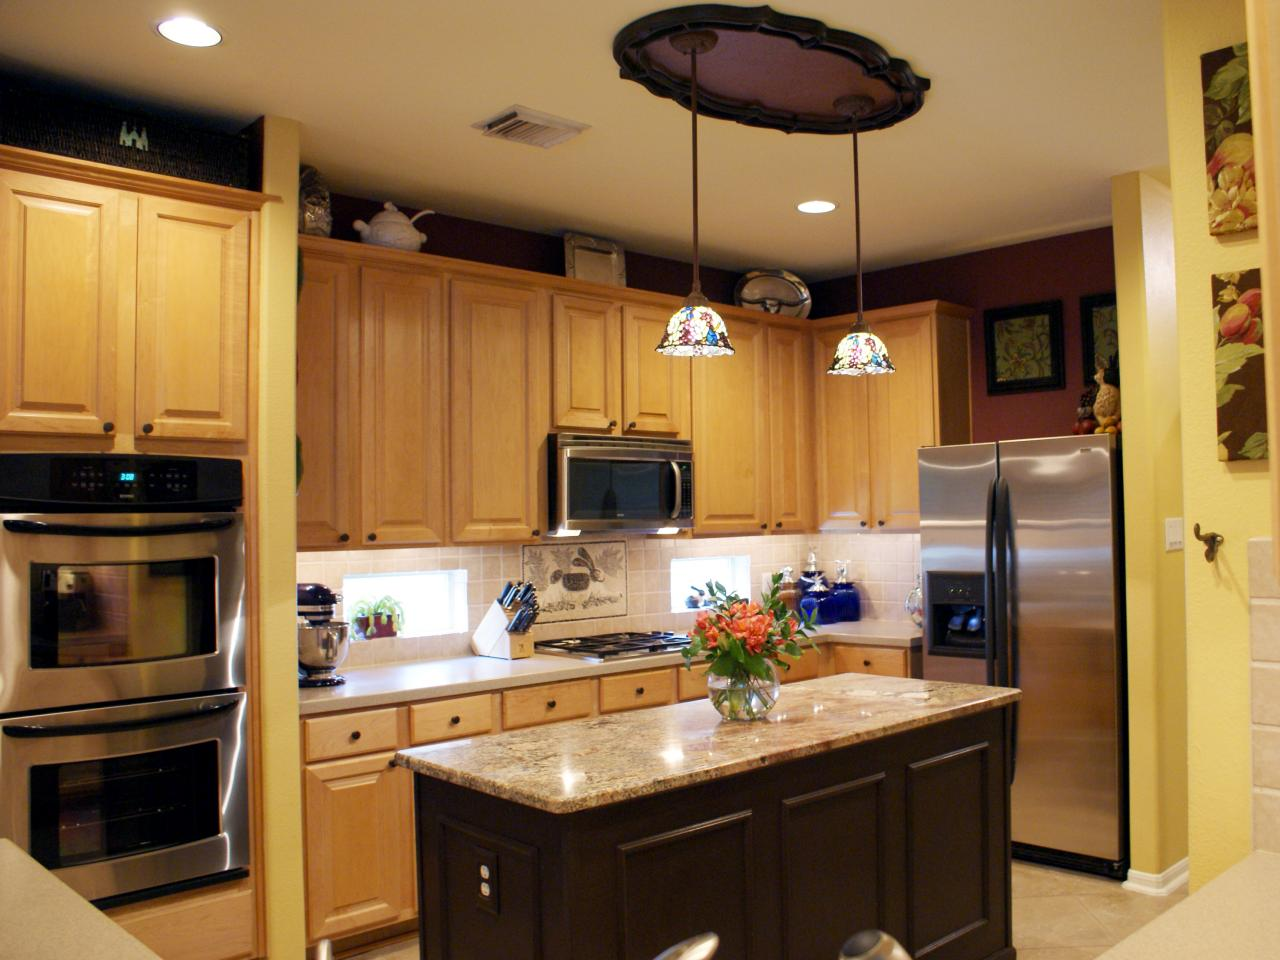 replacing kitchen cabinets related to: cabinets kitchen refacing dnfnosu